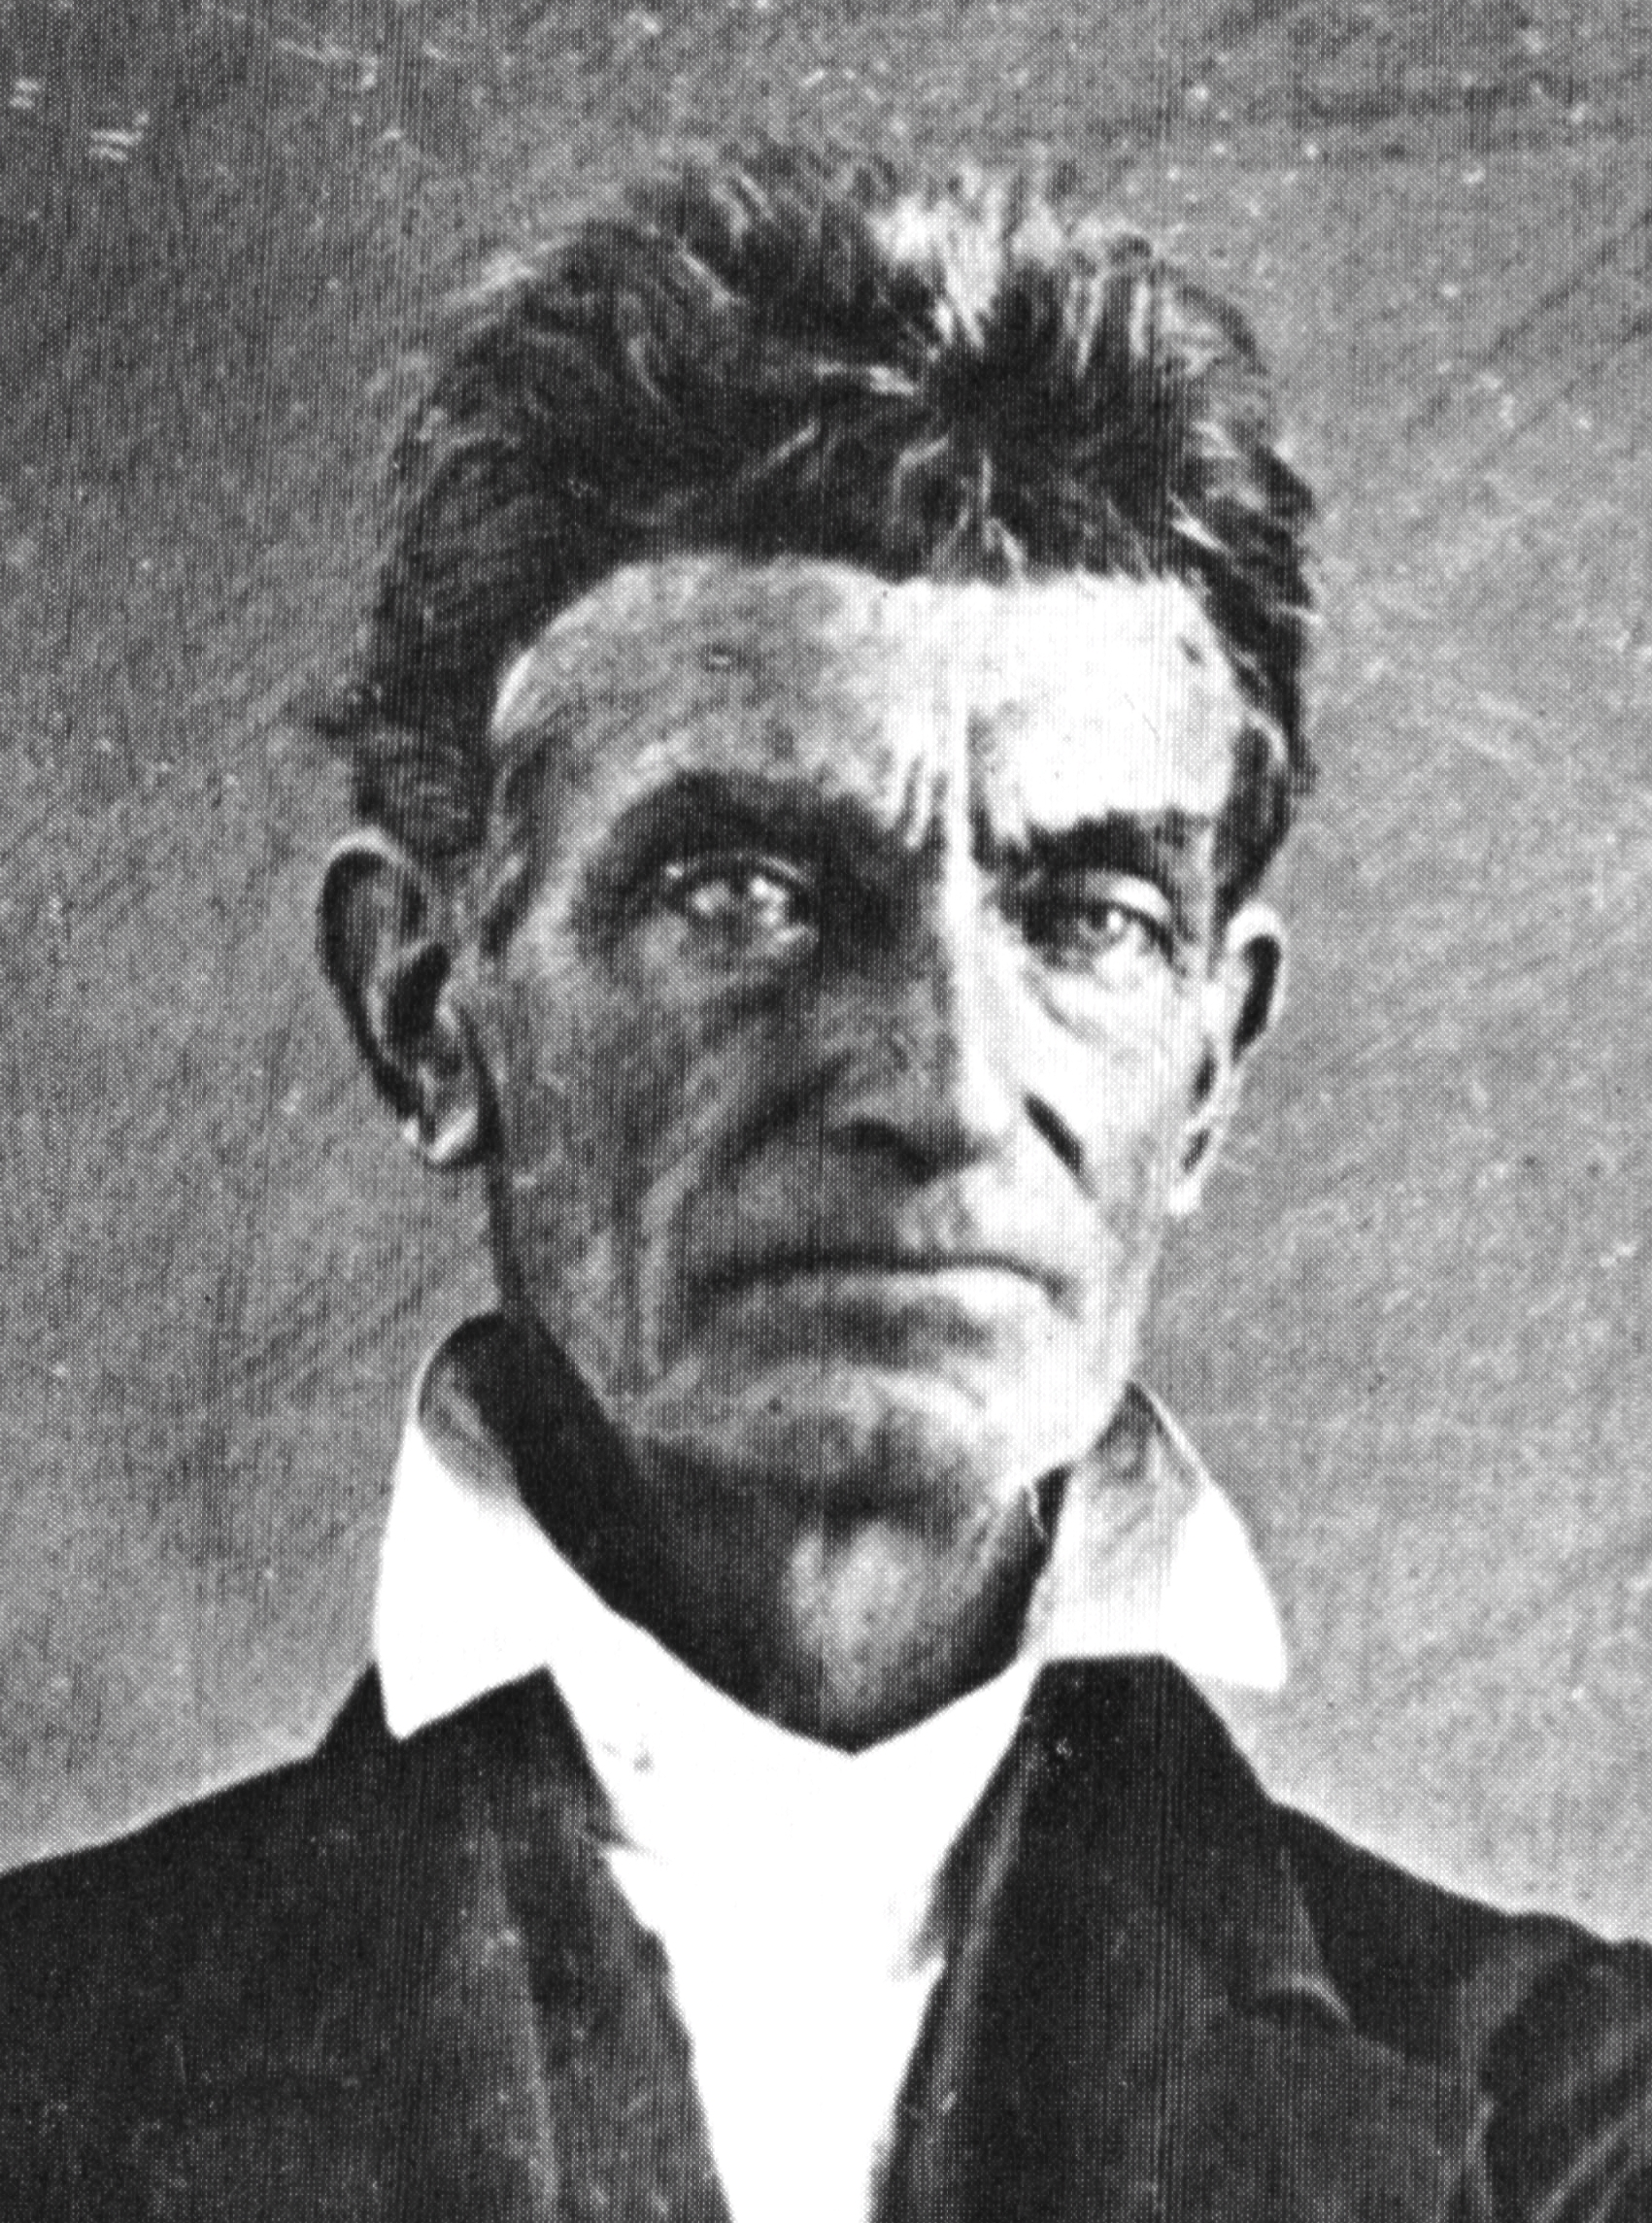 a biography of john brown an abolitionist John brown was an abolitionist most known for his failed raid on harper's ferry in virginia brown was born in may, 1800 in torrington, connecticut, into a family with strong abolitionist beliefs, brown learned to hate slavery from a young age.